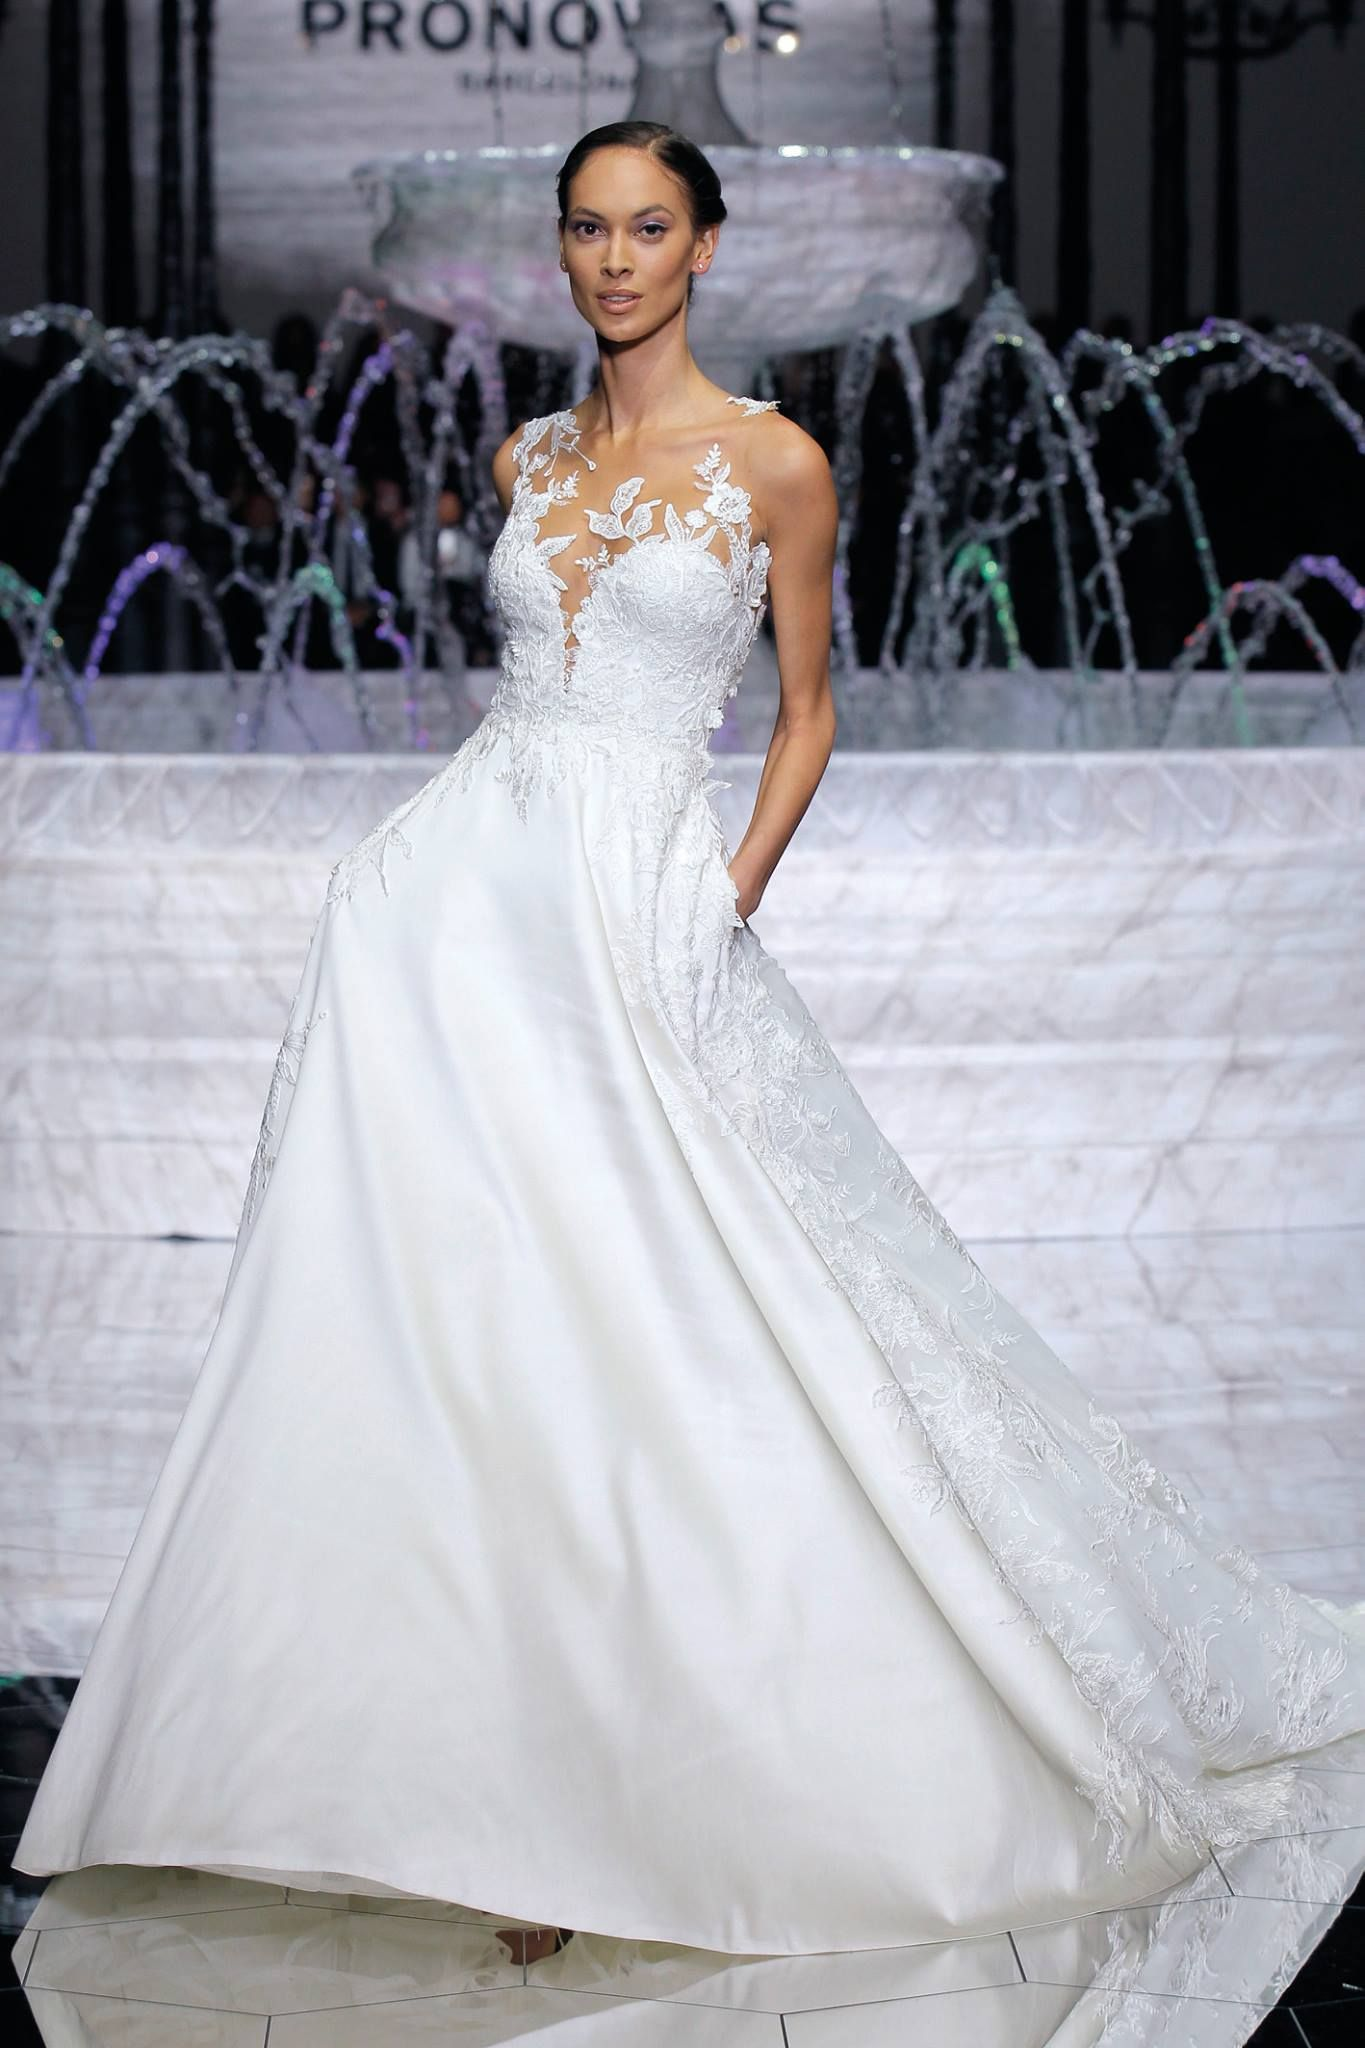 ed87dd15818 Pronovias presented their Atelier Pronovias 2018 Collection of haute couture  bridal gowns in breathtaking fashion show that closed out the annual  Barcelona ...